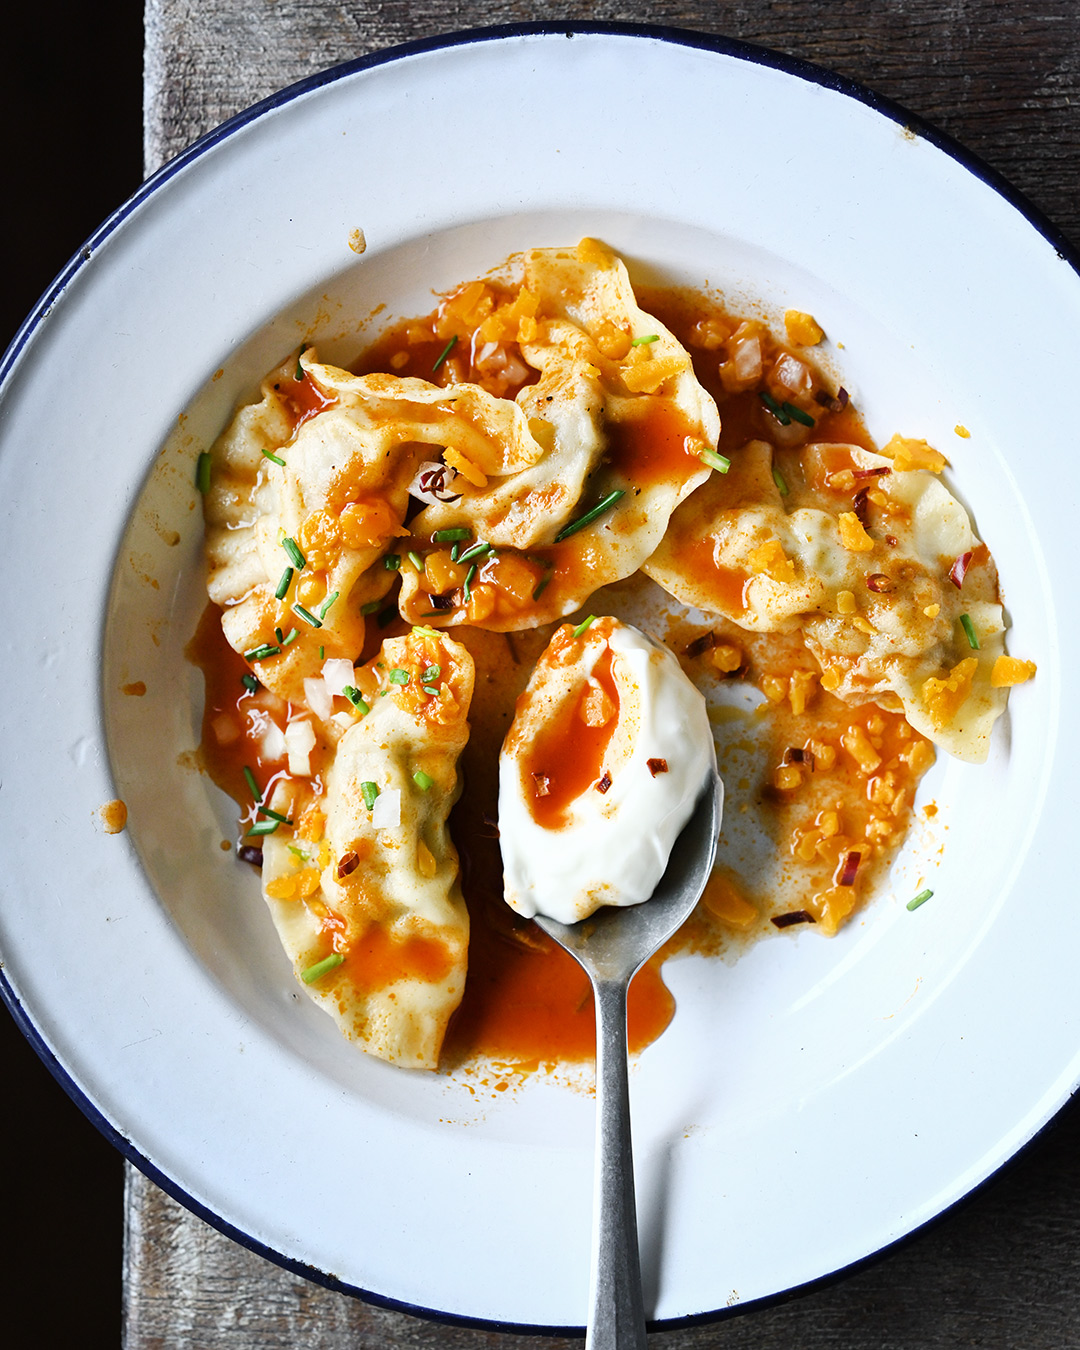 Serving dumplings | Chili con carne-style pierogi